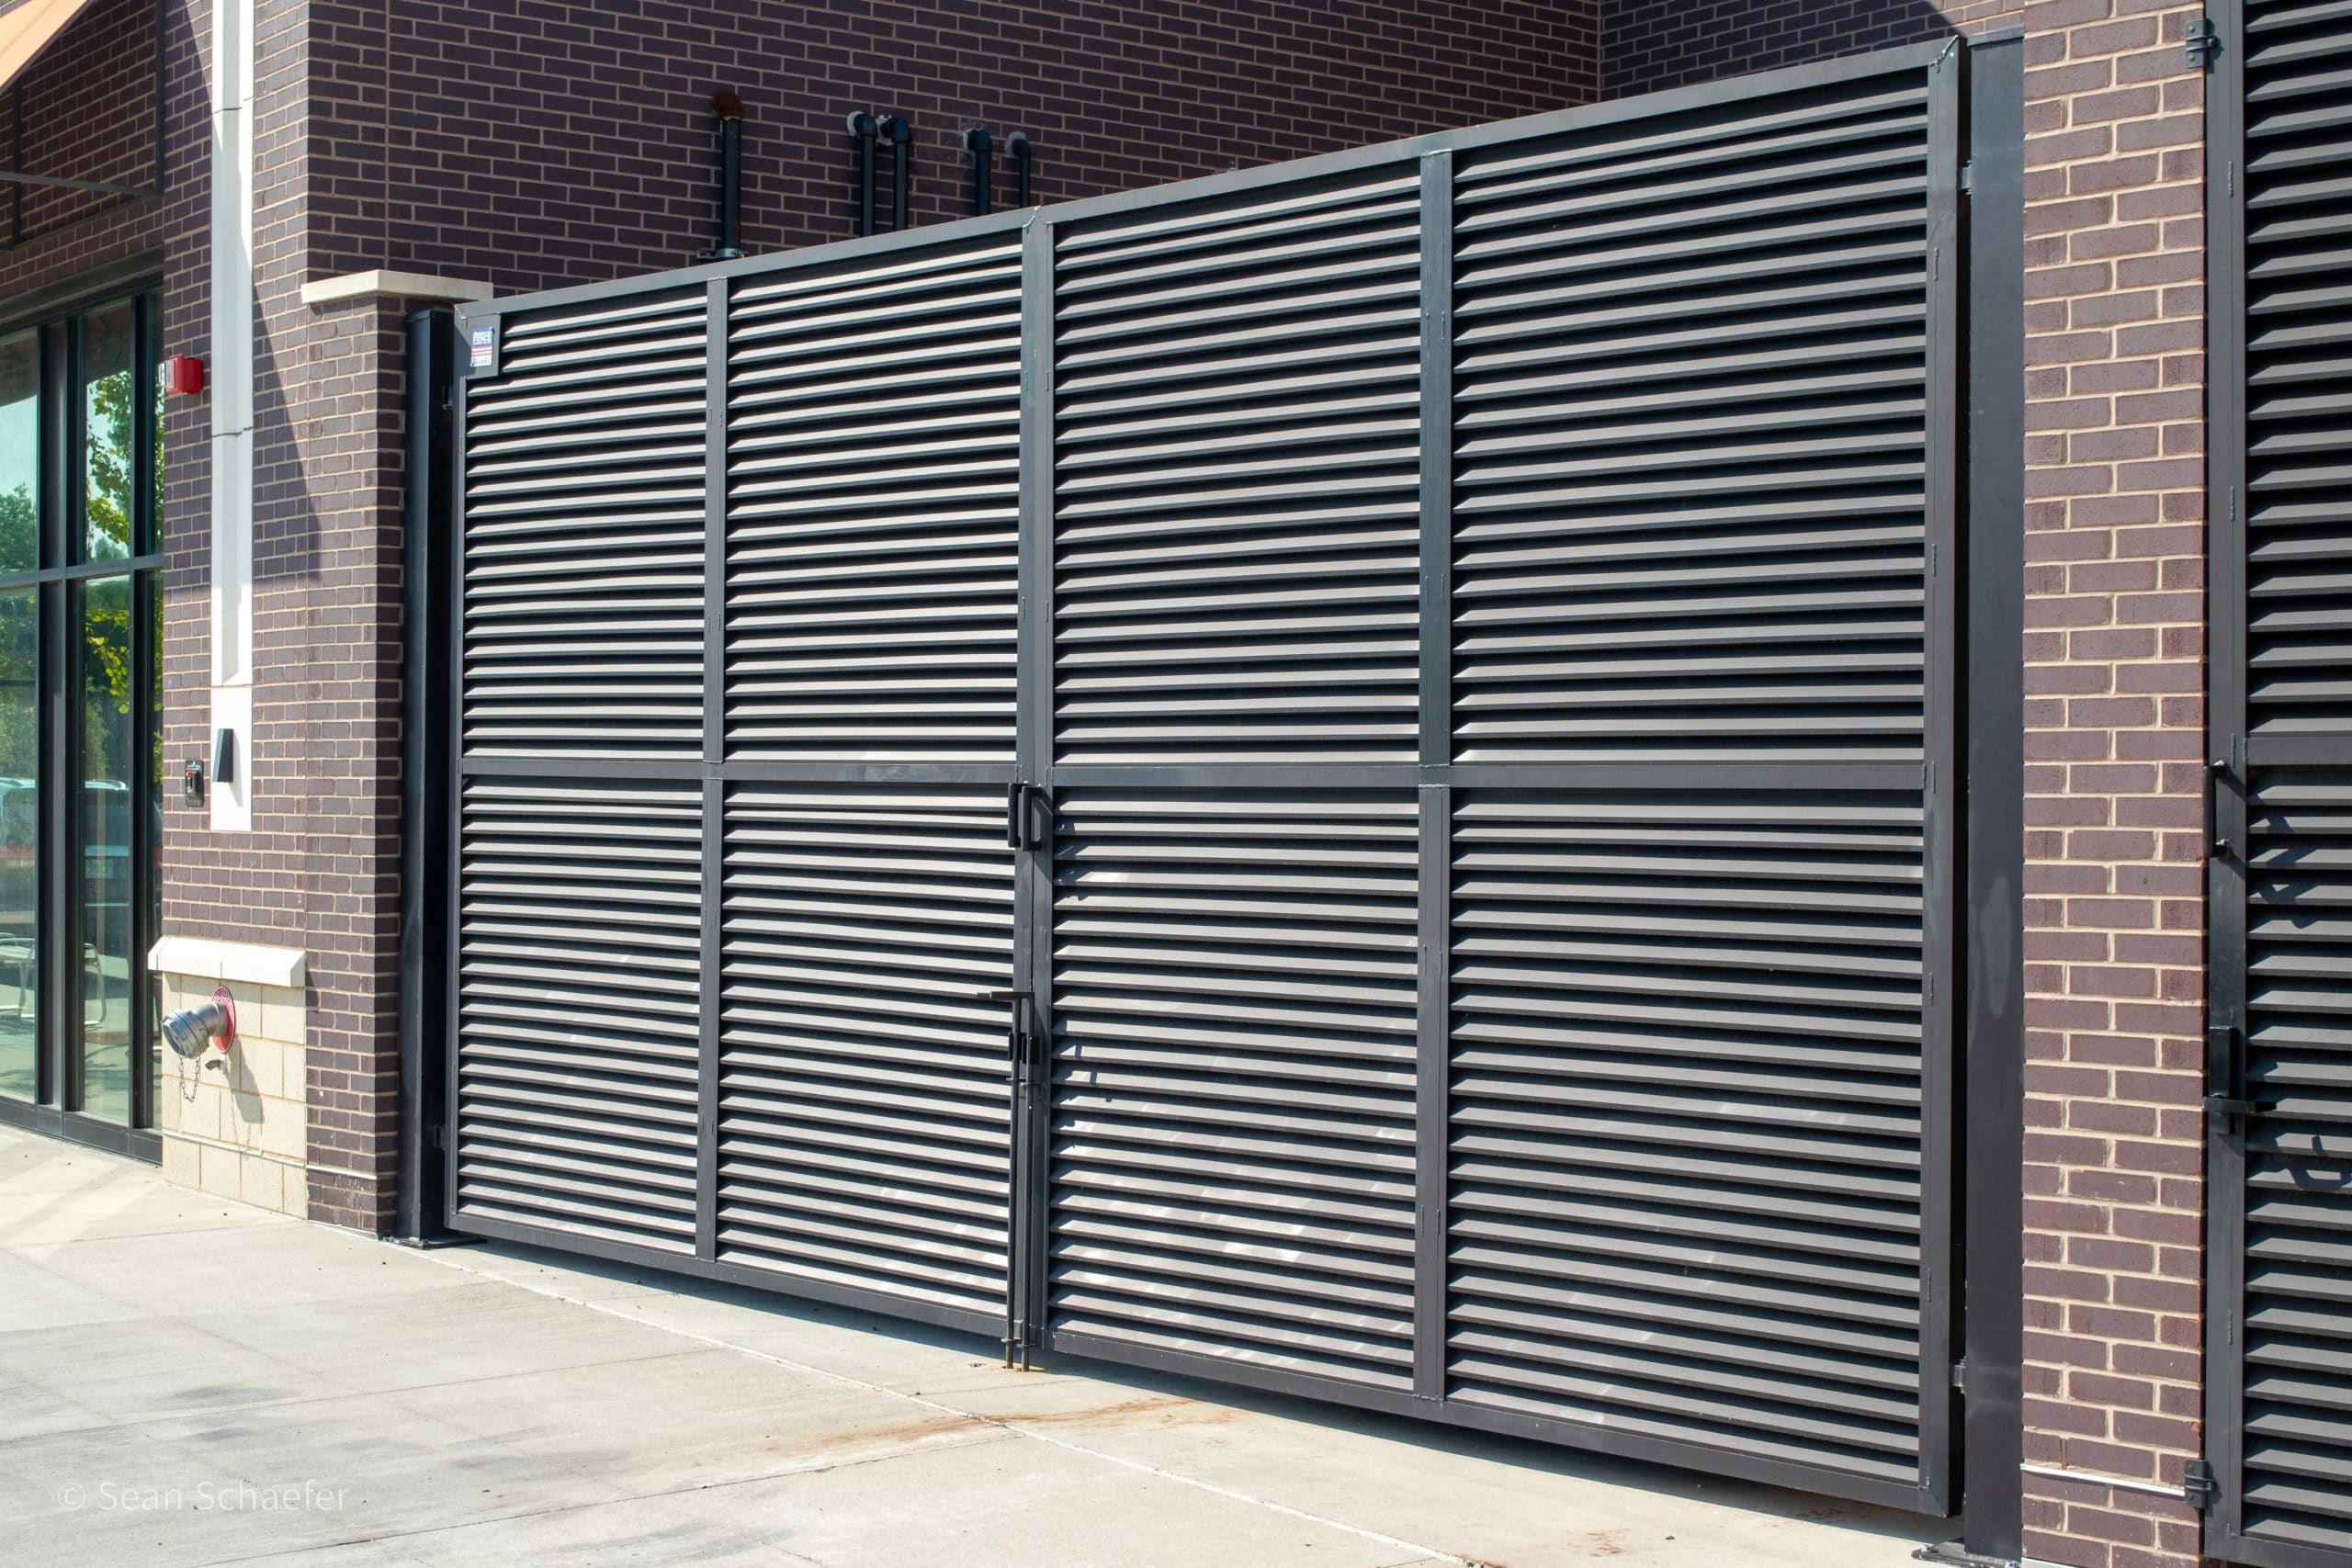 Image of commercial AmeriLouver® dumpster gates at Woodward Corners by Beaumont